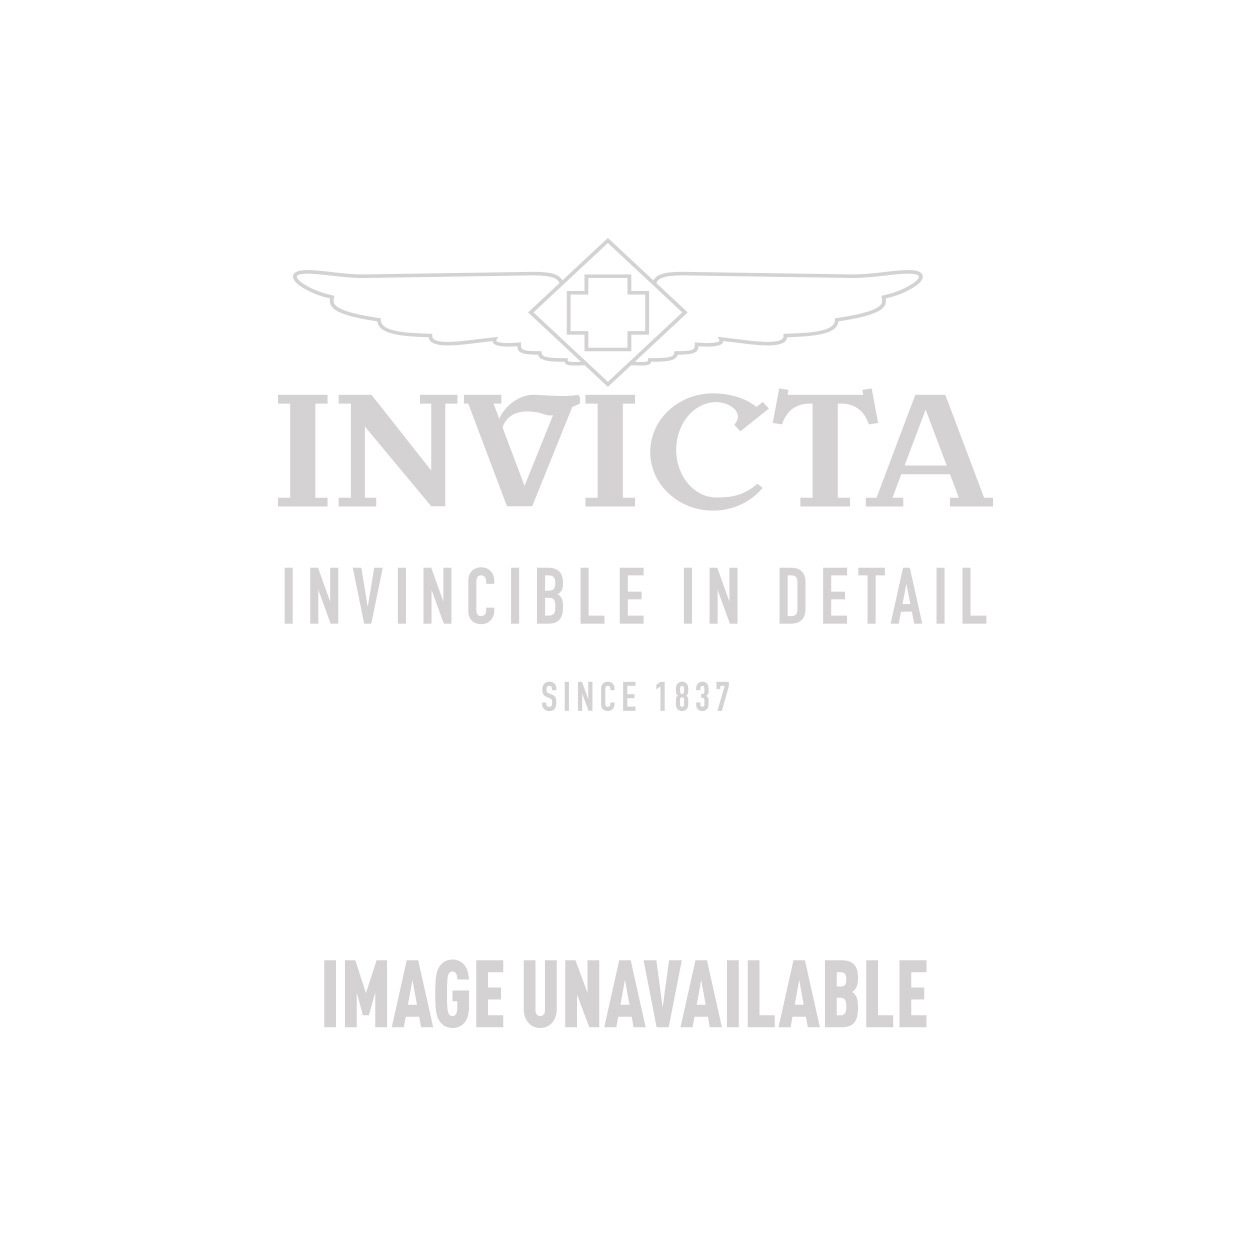 Invicta Angel Swiss Movement Quartz Watch - Gold case with Gold tone Stainless Steel band - Model 0466